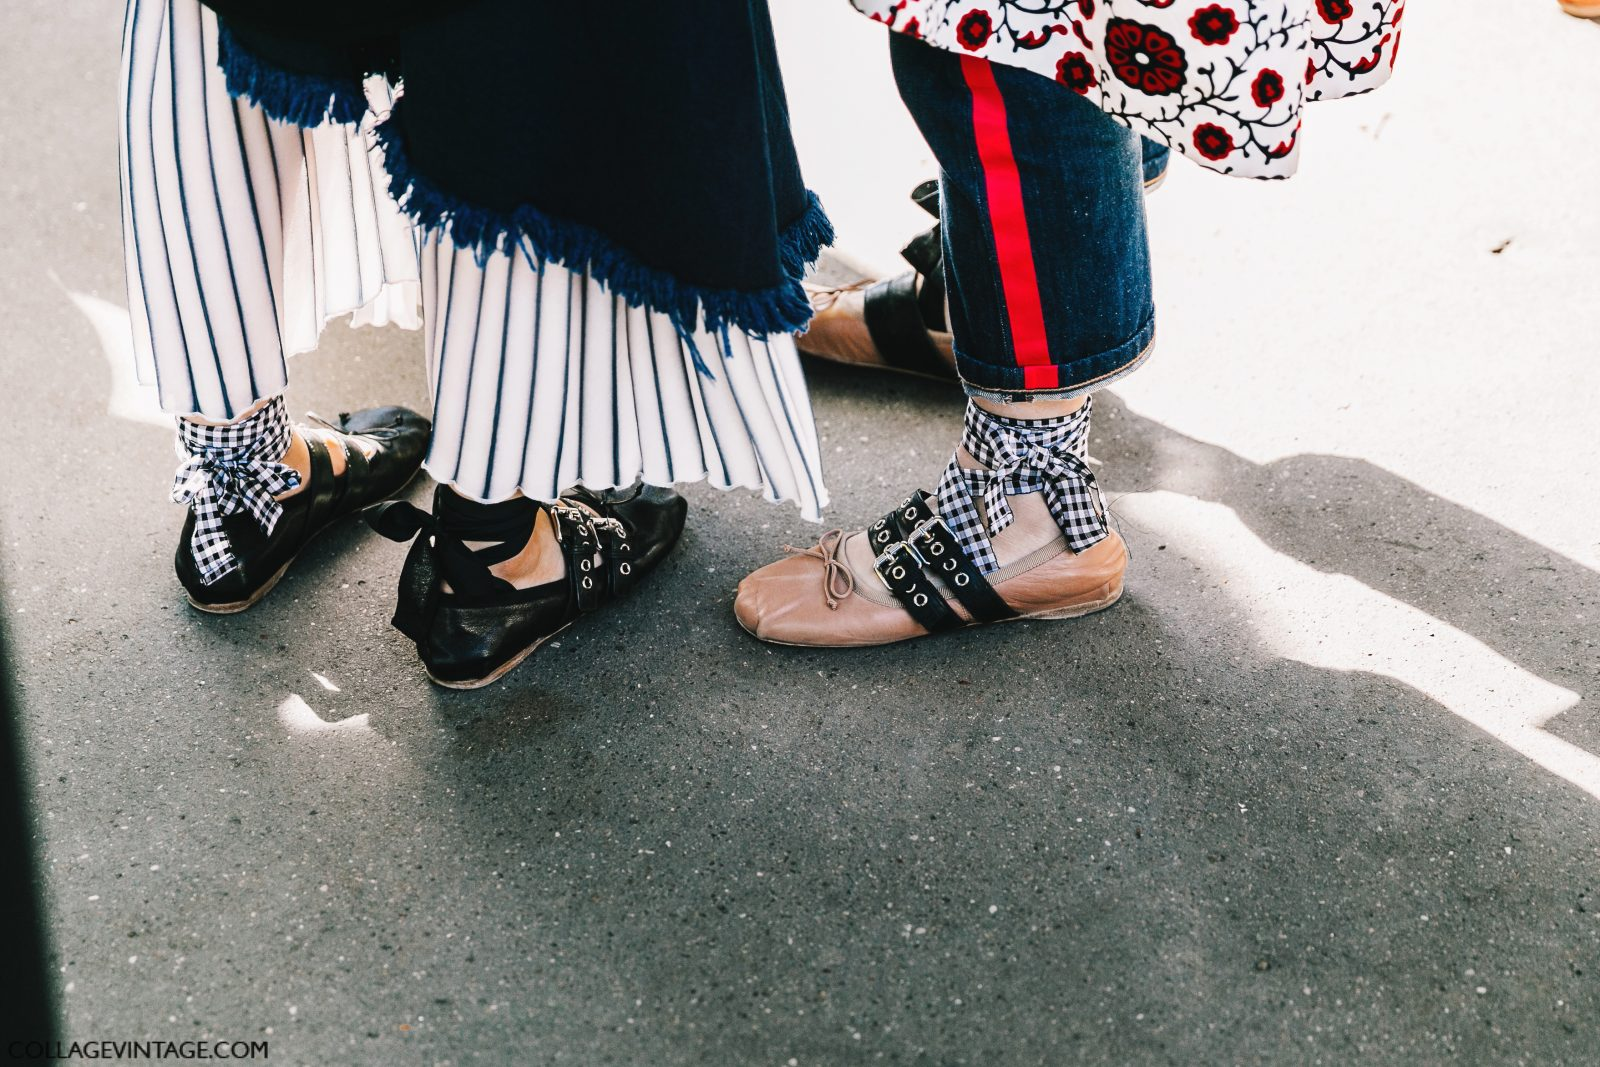 pfw-paris_fashion_week_ss17-street_style-outfit-collage_vintage-louis_vuitton-miu_miu